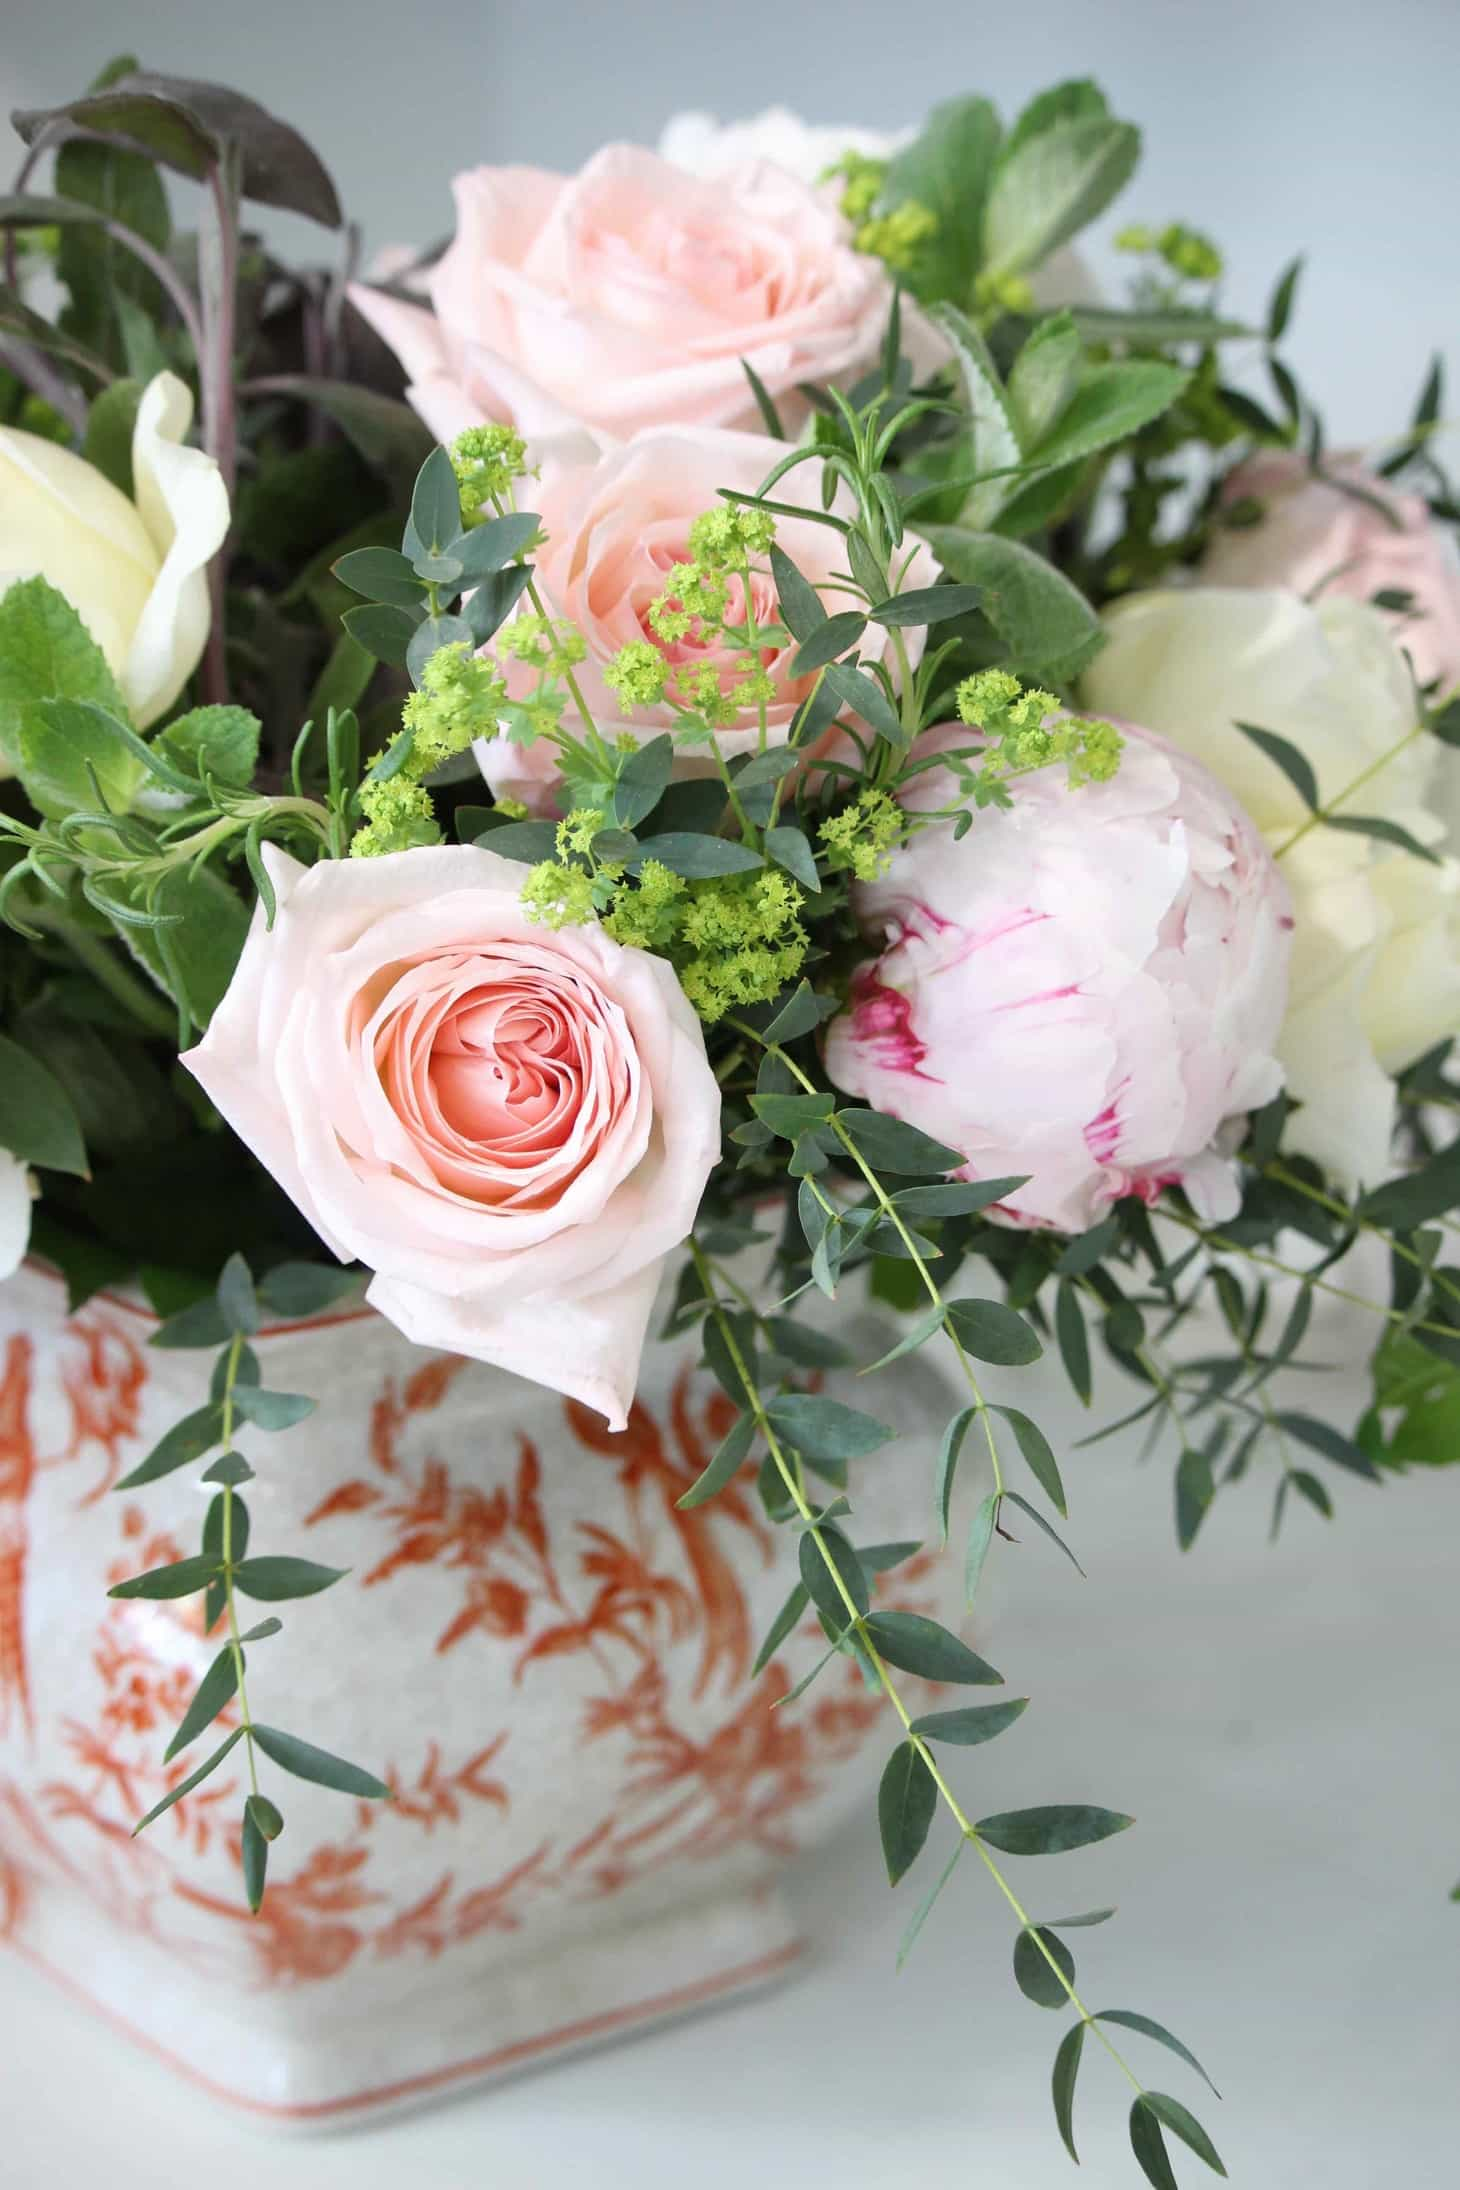 Why Organic Flowers Became So Popular The Smell Of Roses The